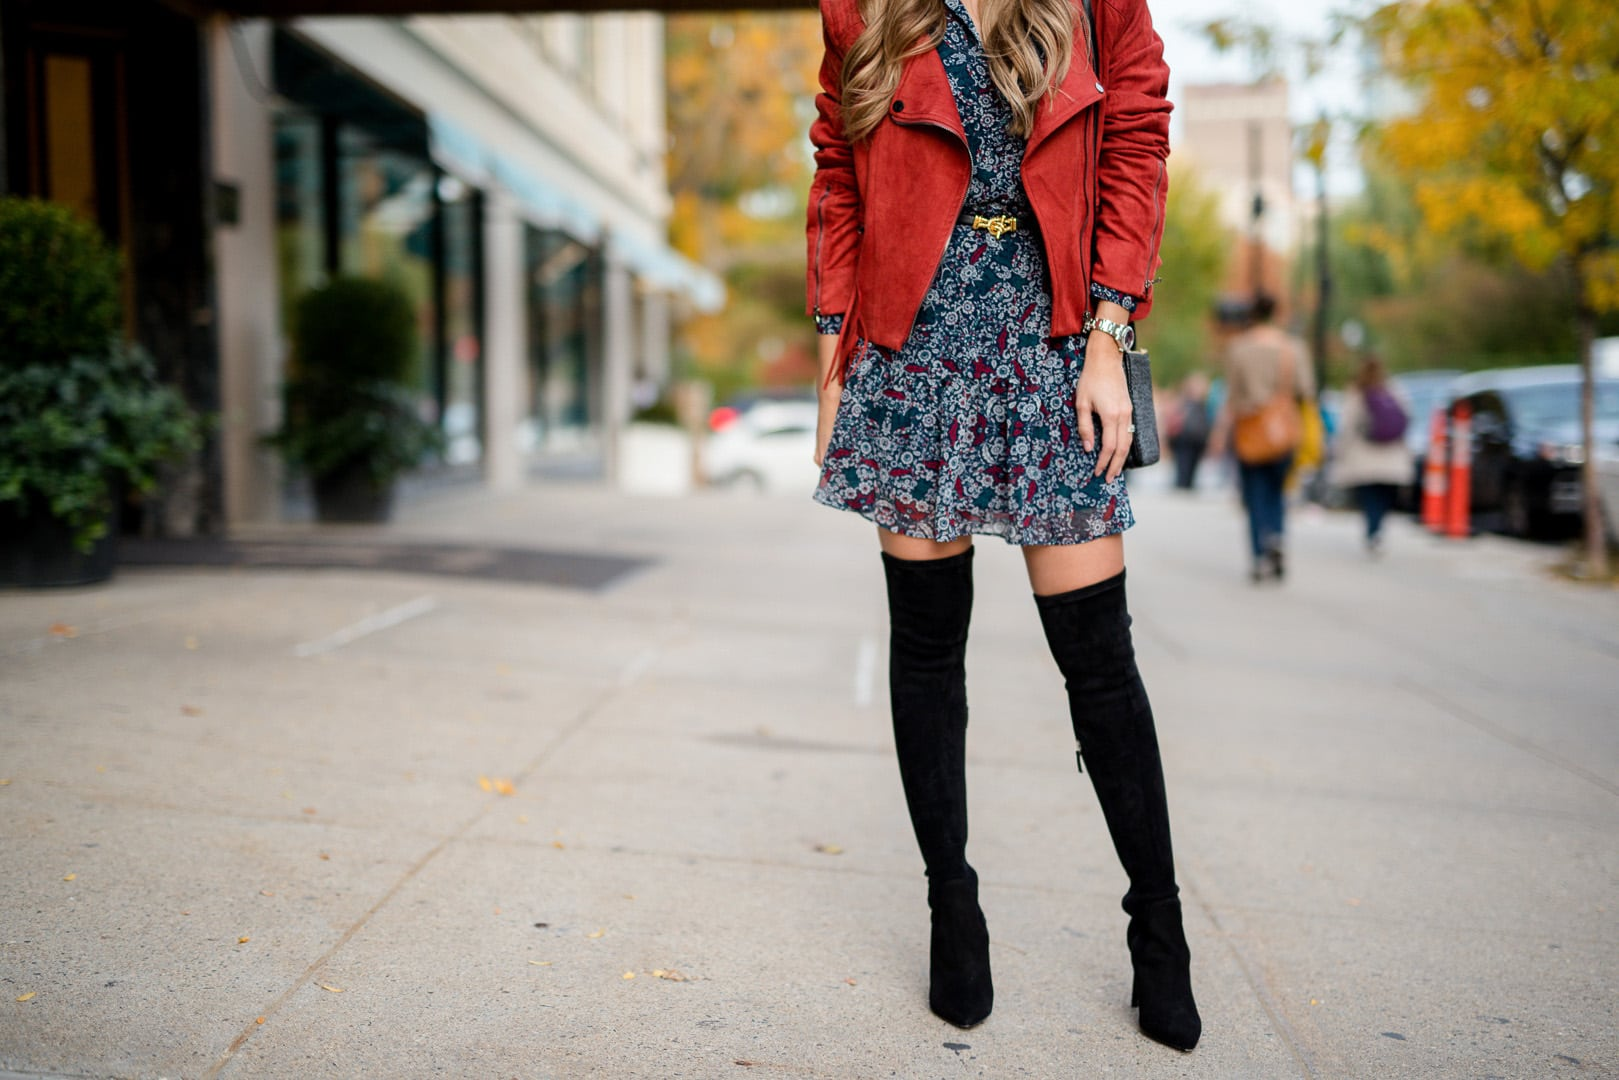 Pam Hetlinger wearing a suede fringed jacket, floral dress and Delman over-the-knee boots